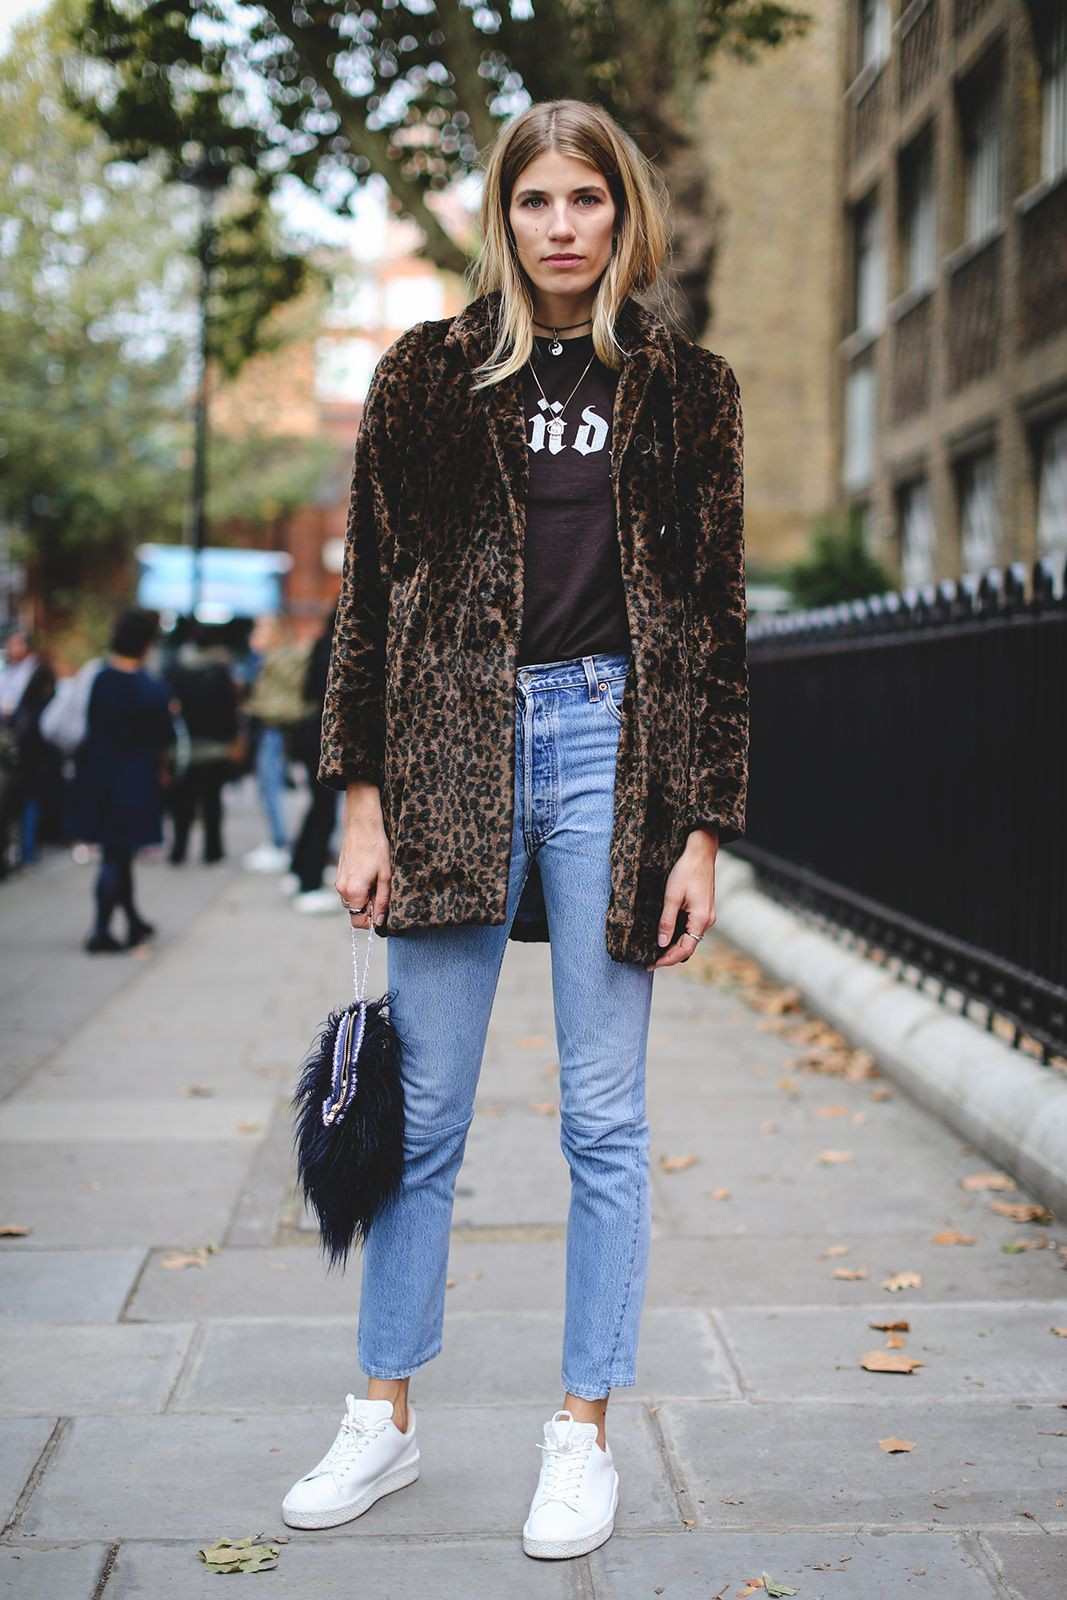 Street look fashion ideas veronika heilbrunner jeans, Manteau de fourrure